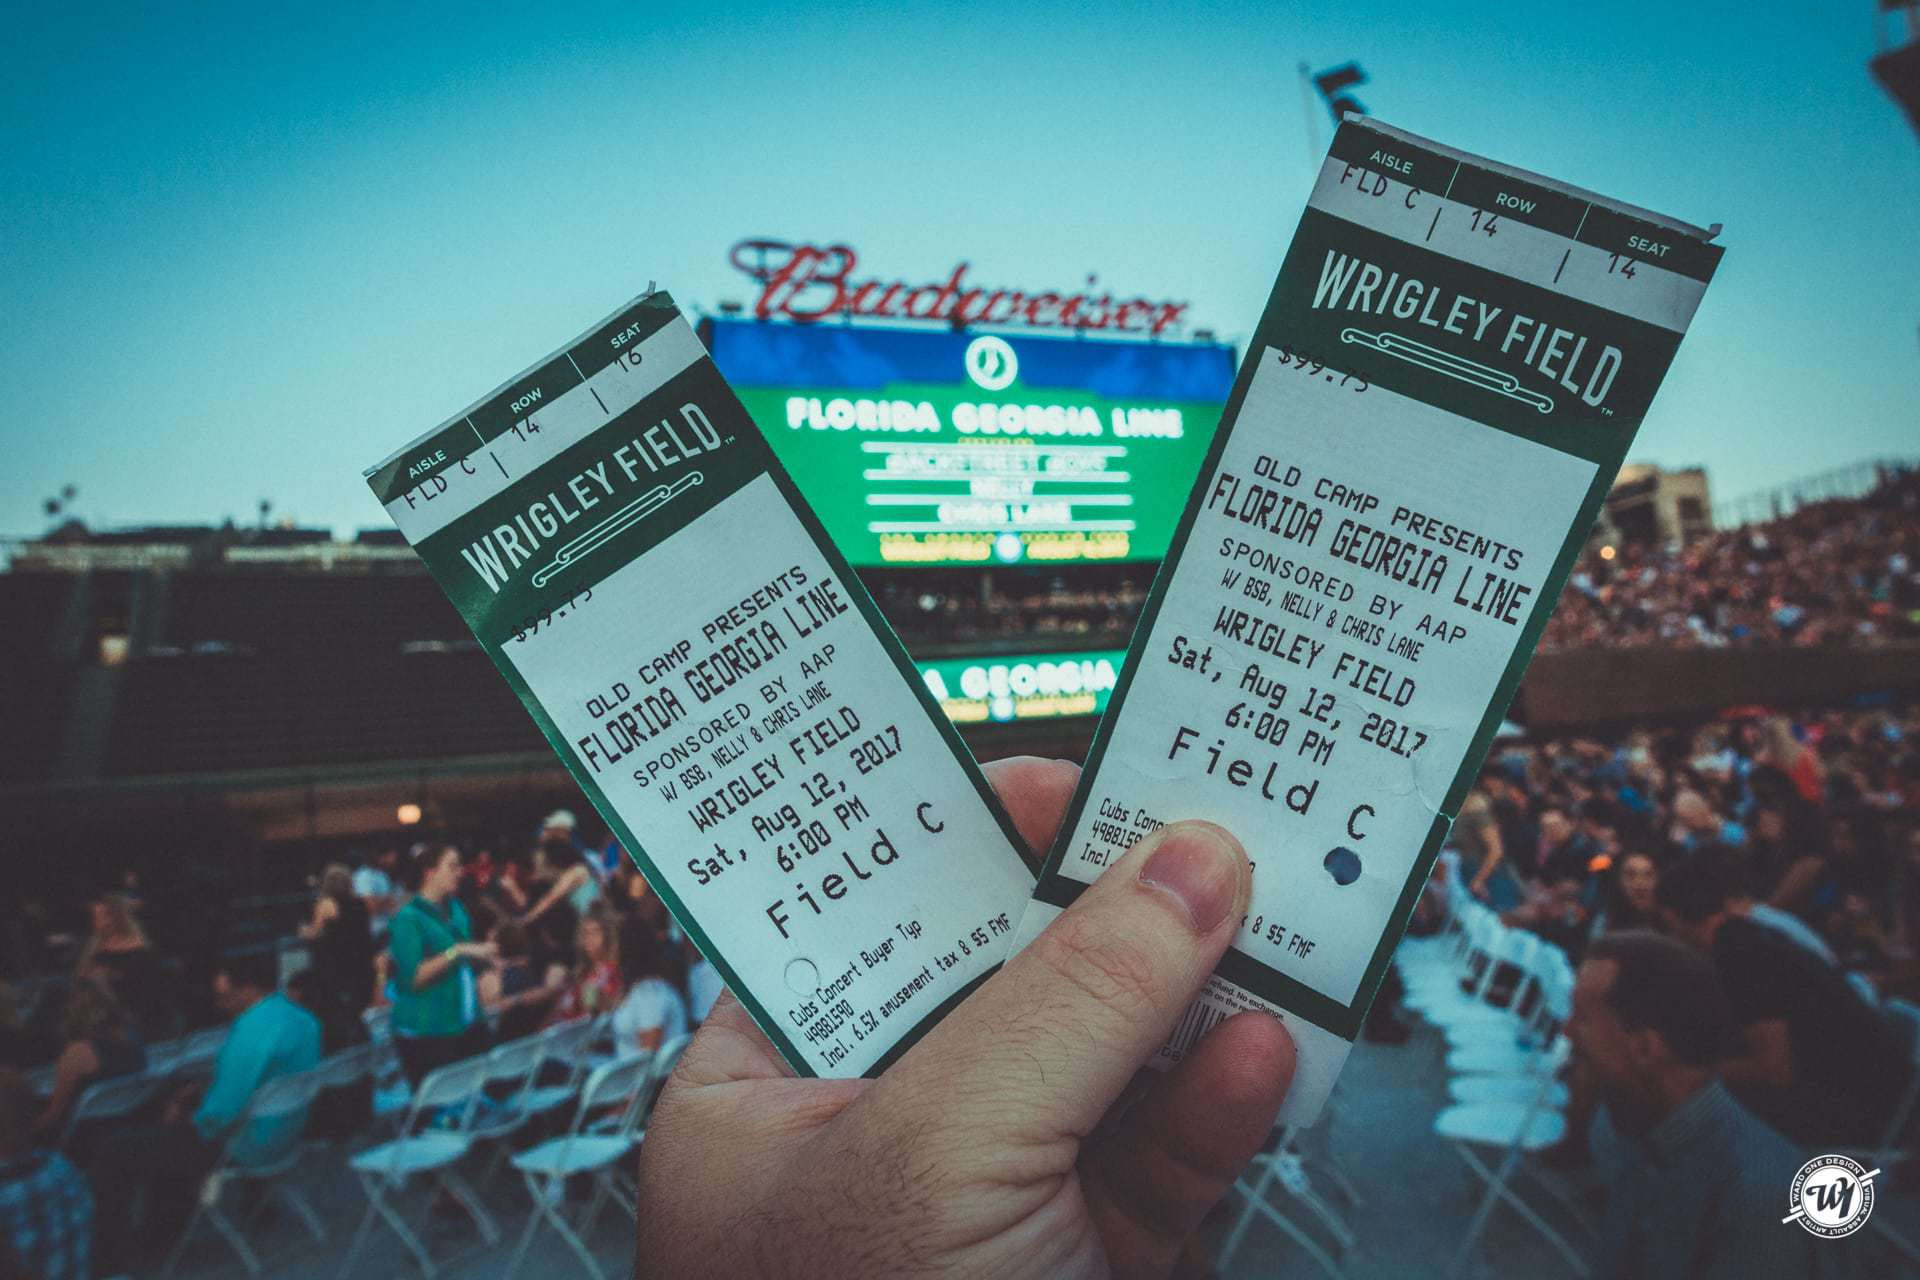 Florida Georgia Line • Backstreet Boys • Nelly - Wrigley Field Concerts